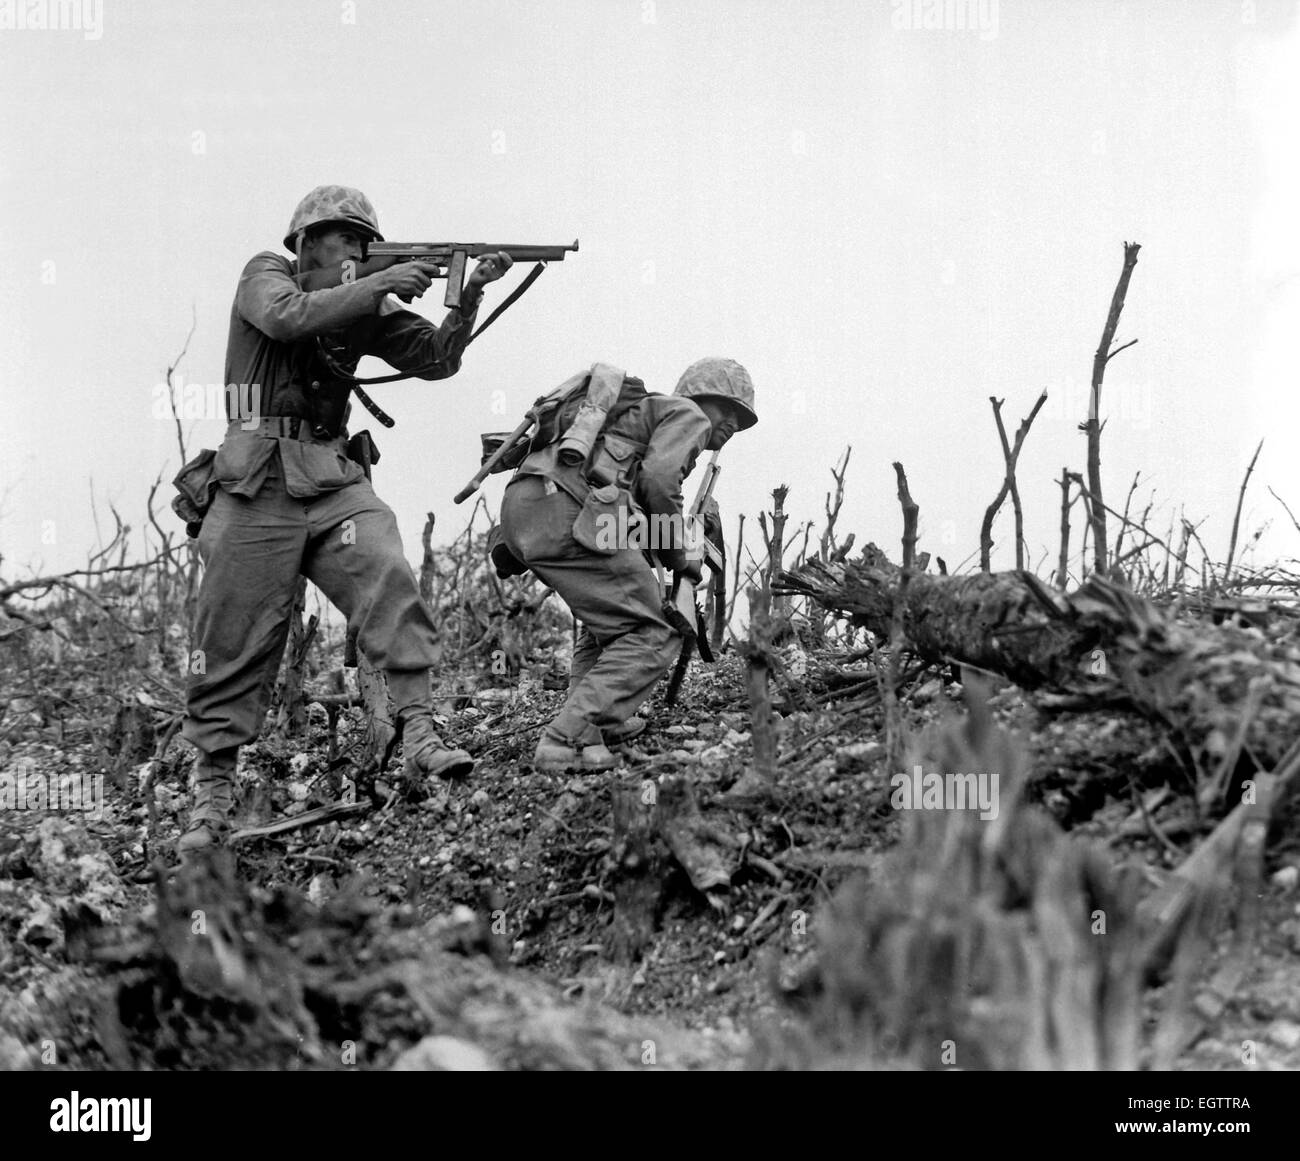 Marine fires on a Japanese position using an M1 Thompson submachine gun during an advance on Okinawa in 1945 - Stock Image